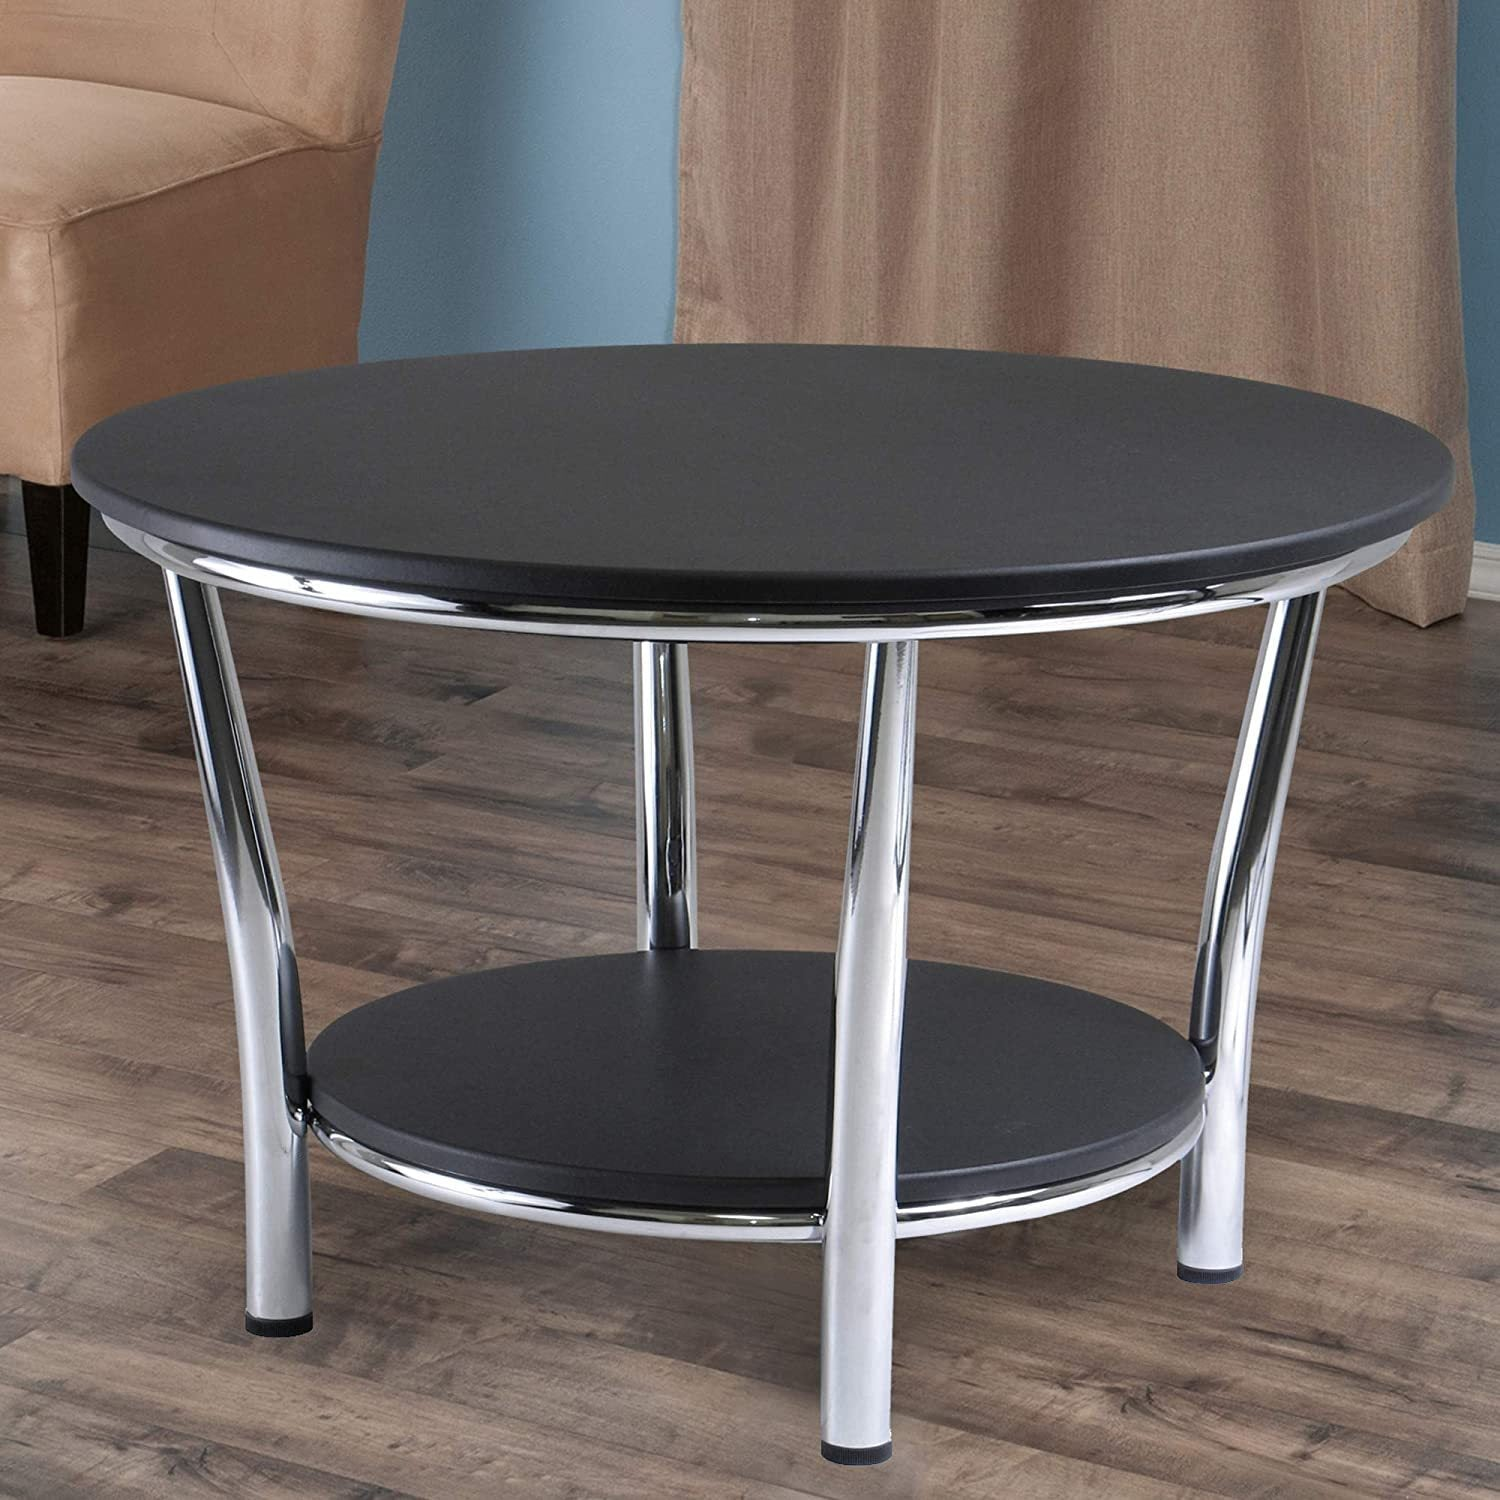 Maya Round End Table, Black Top, Metal Legs - Pot Racks Plus